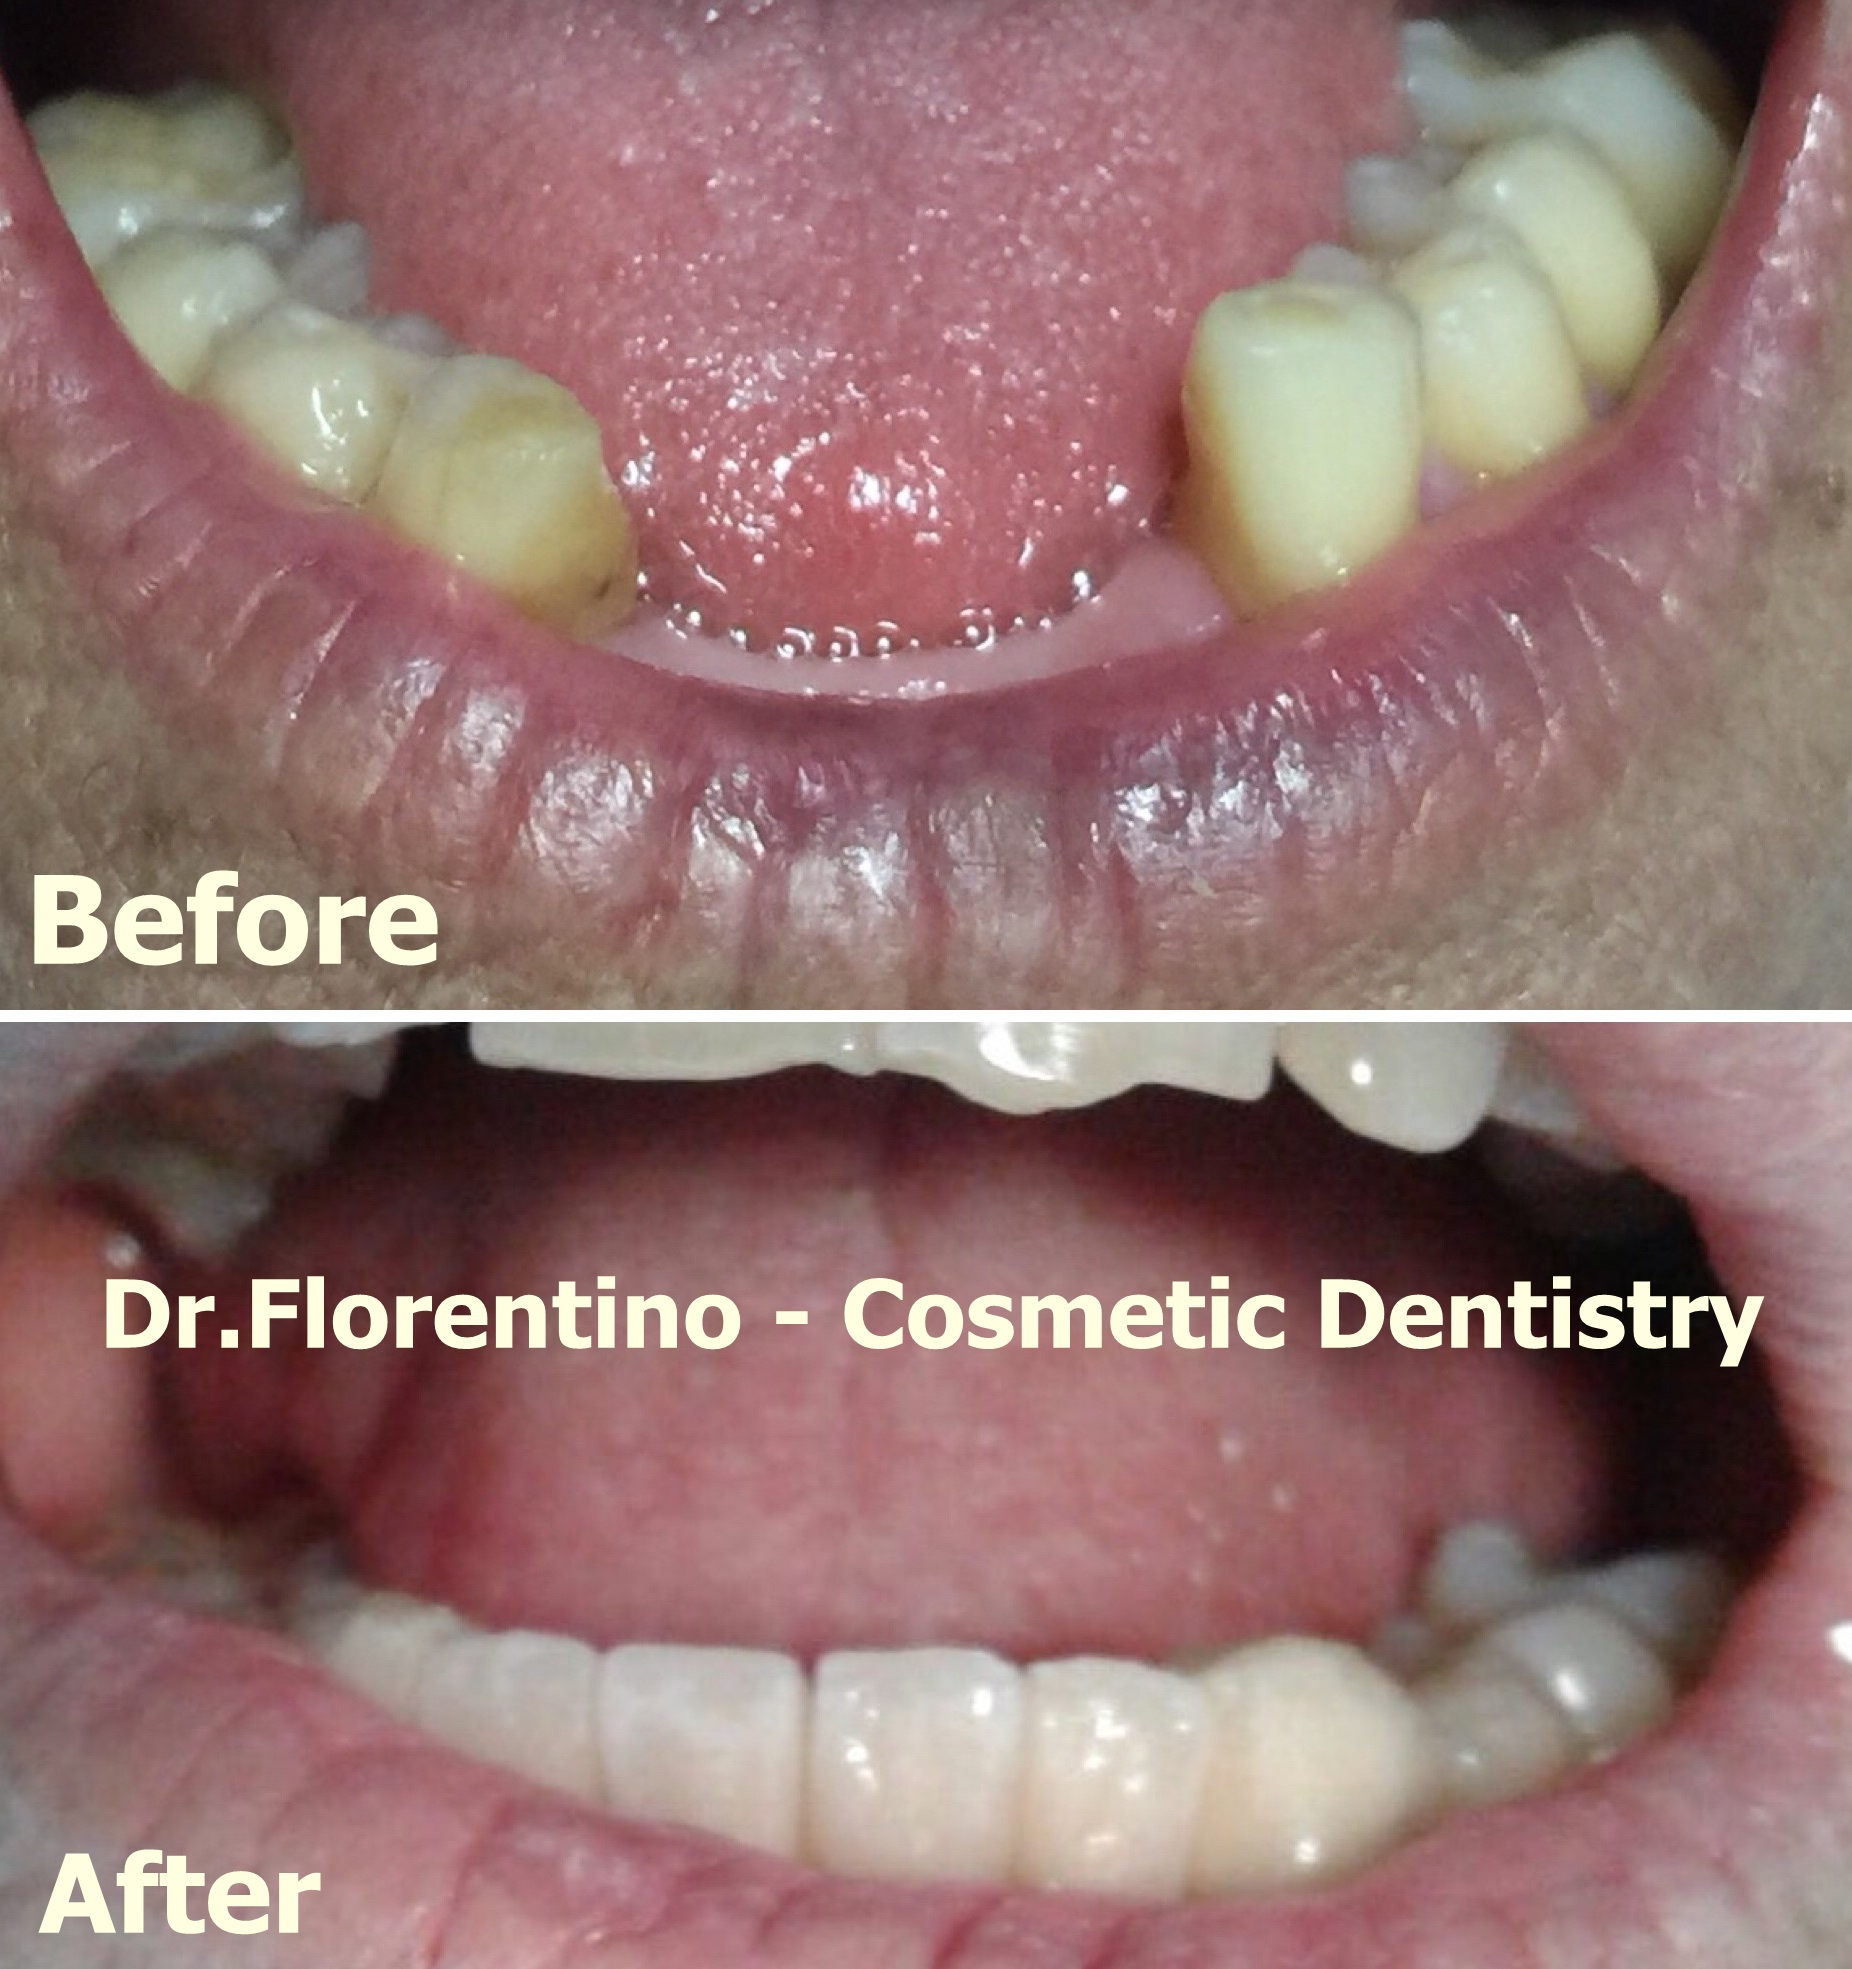 Dental Implants Cost Guide In The Dominican Republic